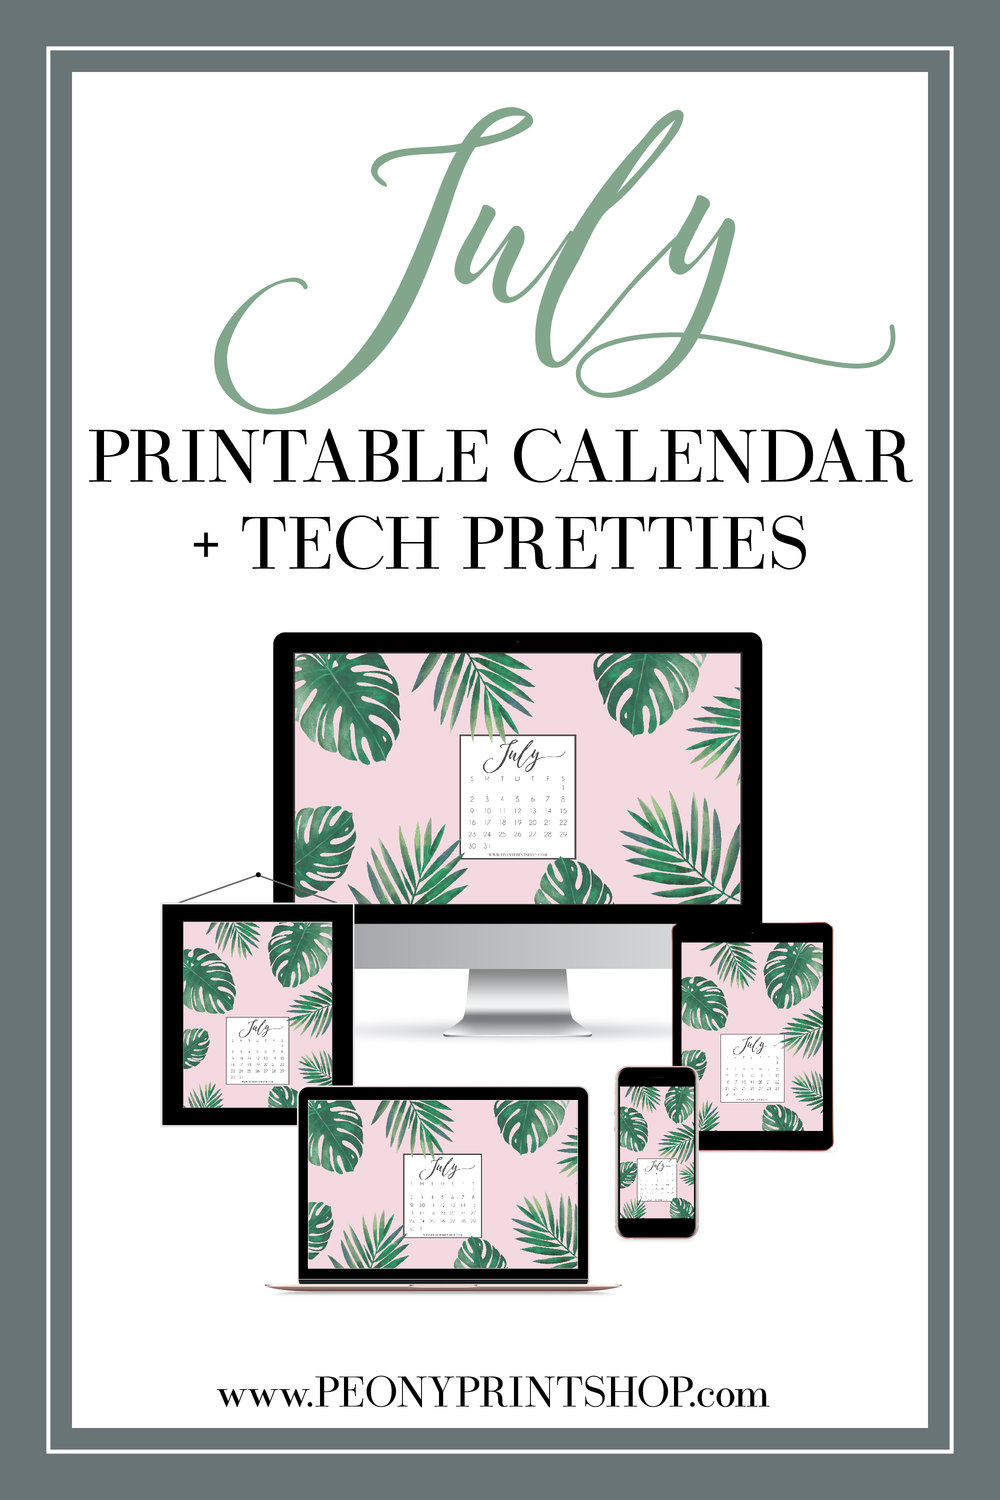 July 2017 Freebies - Printable Calendar & Tech Pretties  |  PeonyPrintshop.com | Custom Wedding Invitations & Stationery